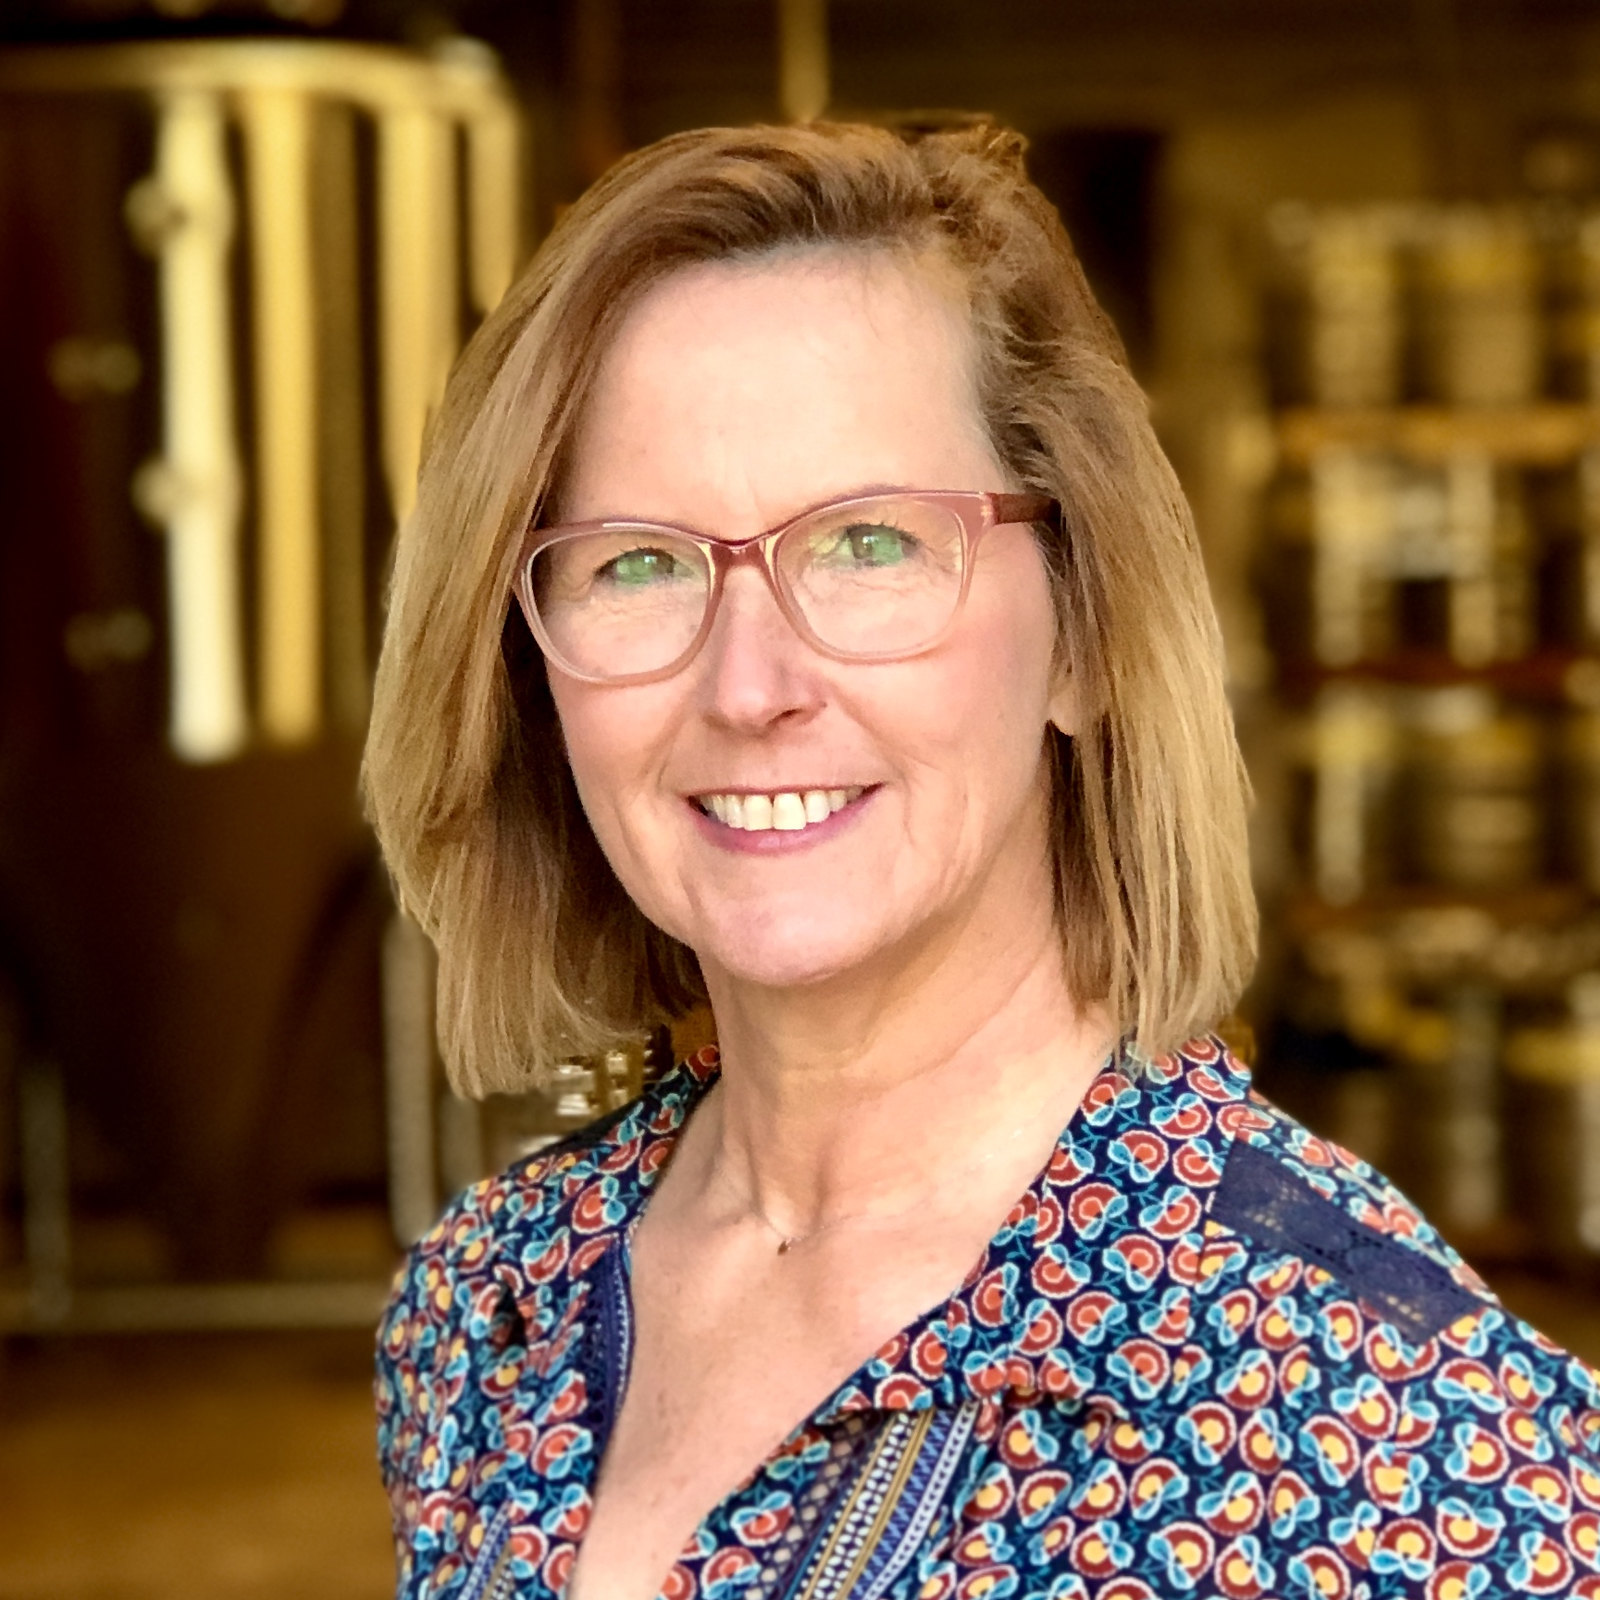 Monday Night Brewing Adds New Director of People and Culture